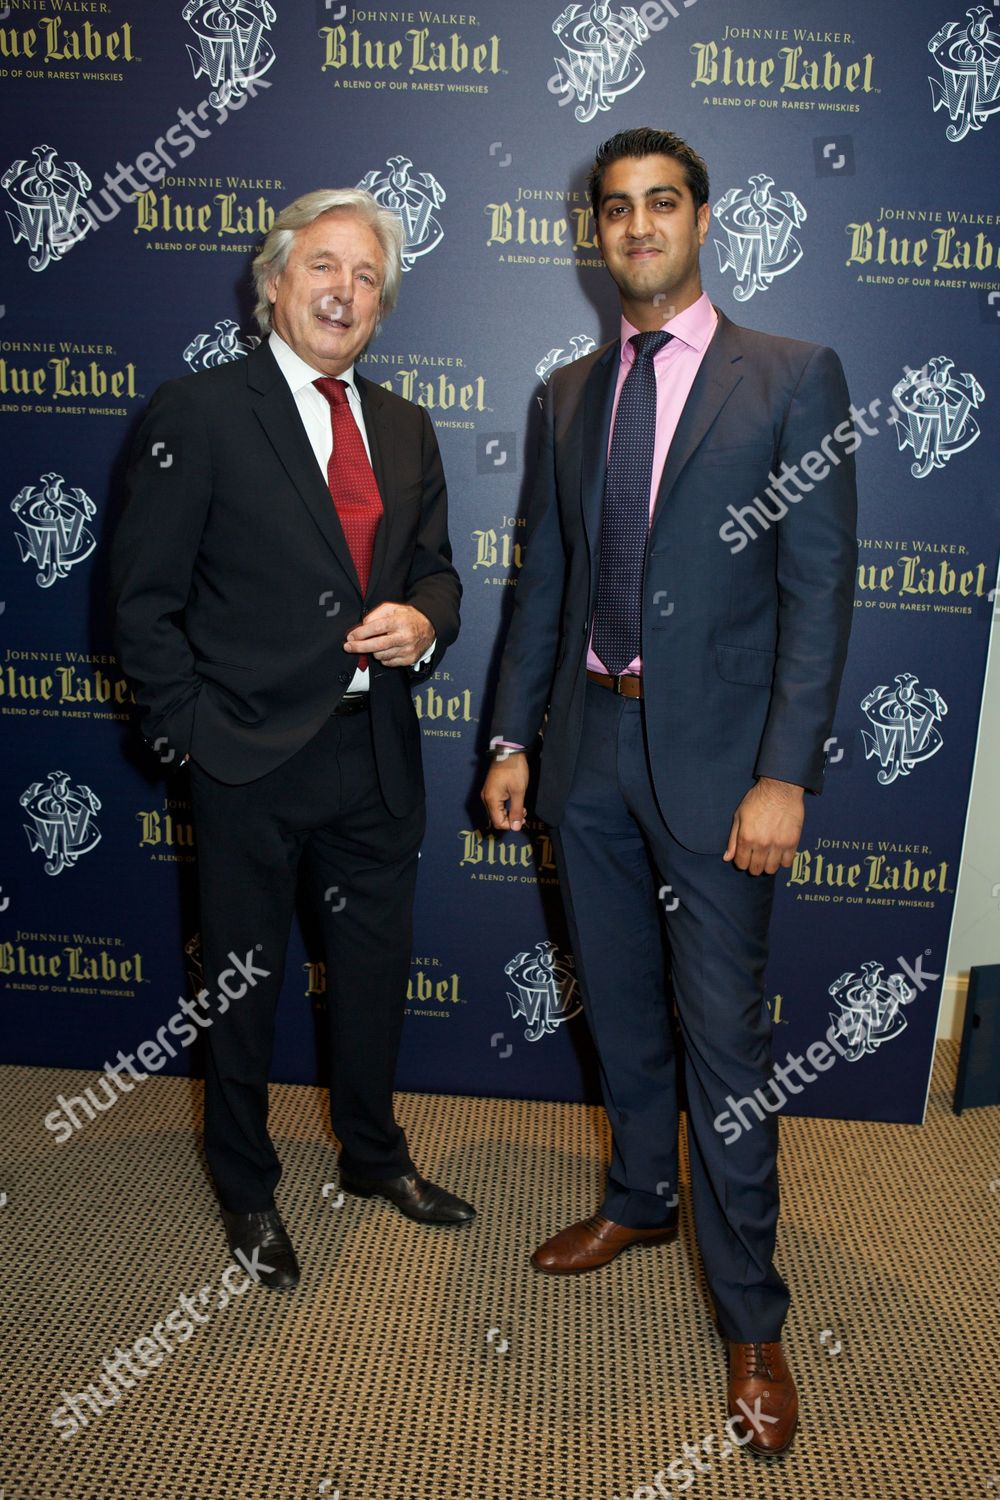 Stock photo of Johnnie Walker Blue Lable Dinner at Lords Cricket Club, London, Britain - 09 May 2012